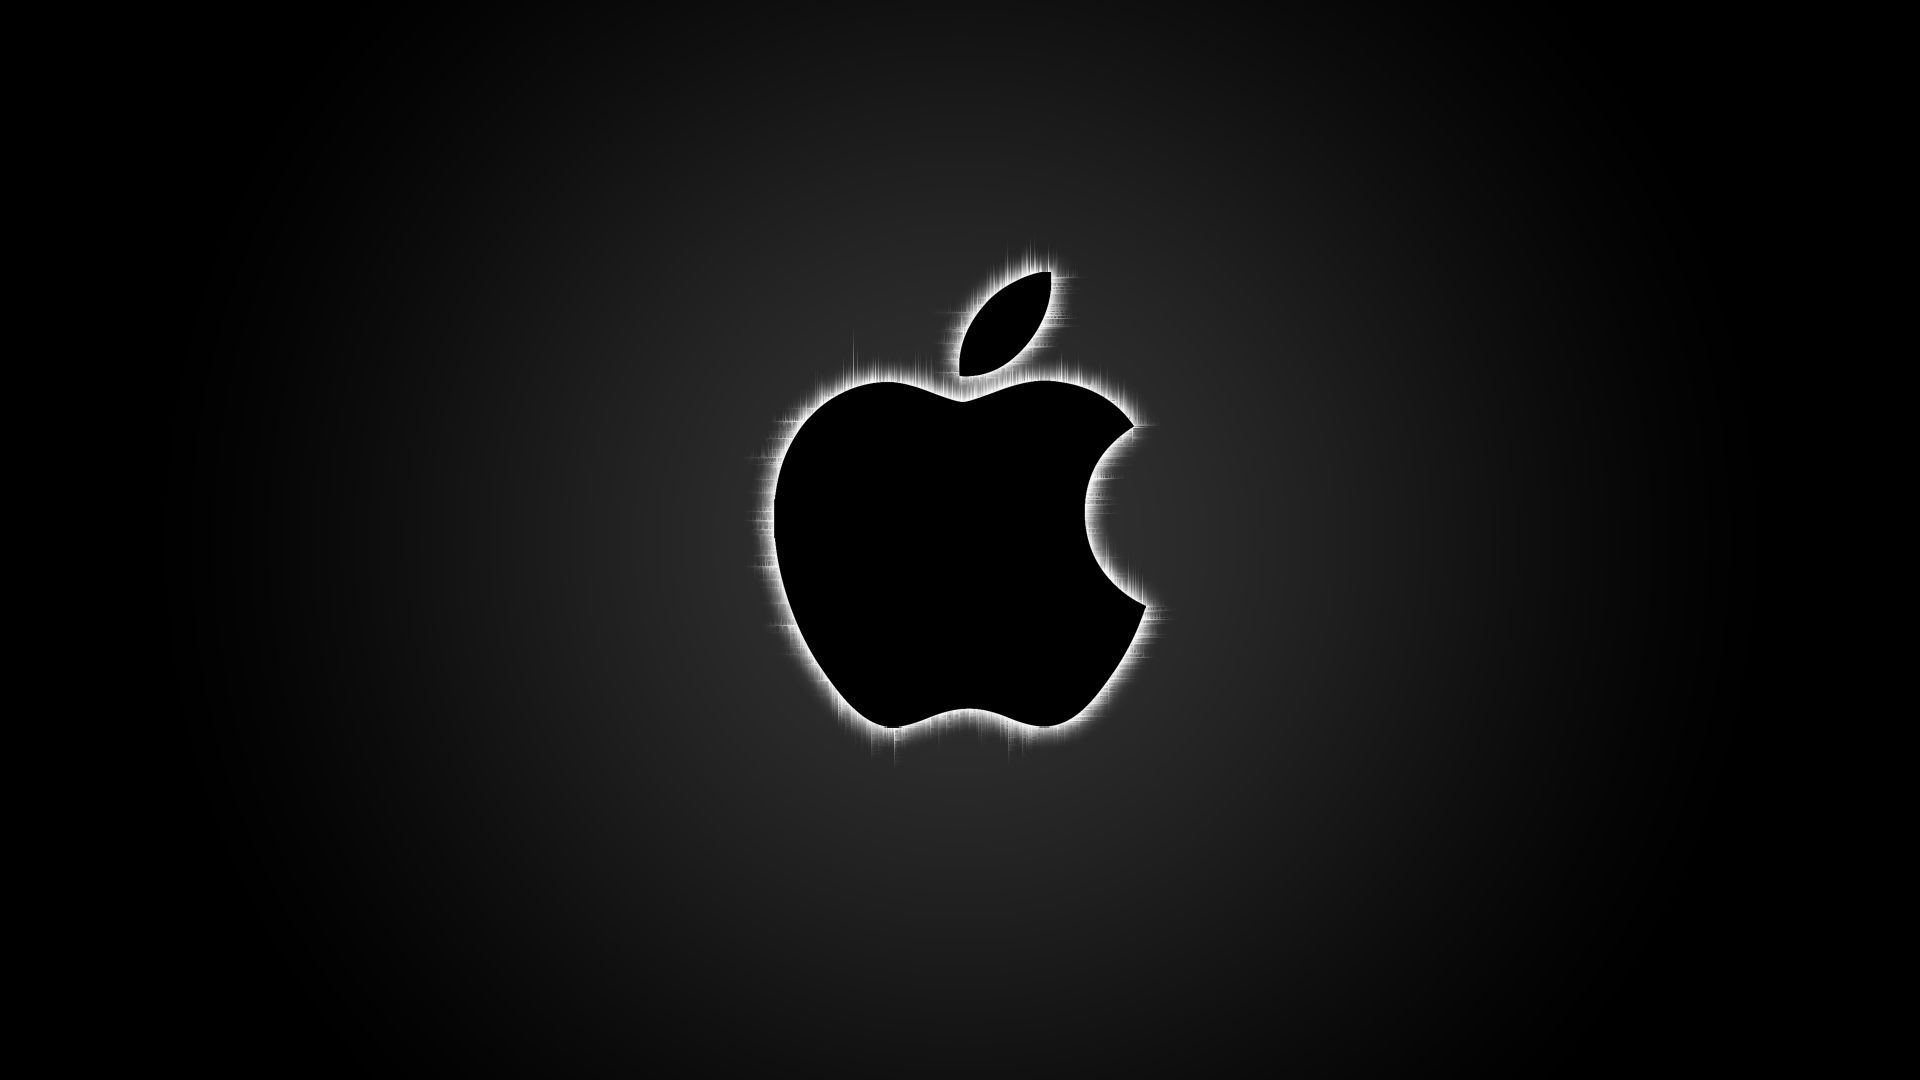 Screensaver Apple For Iphone X